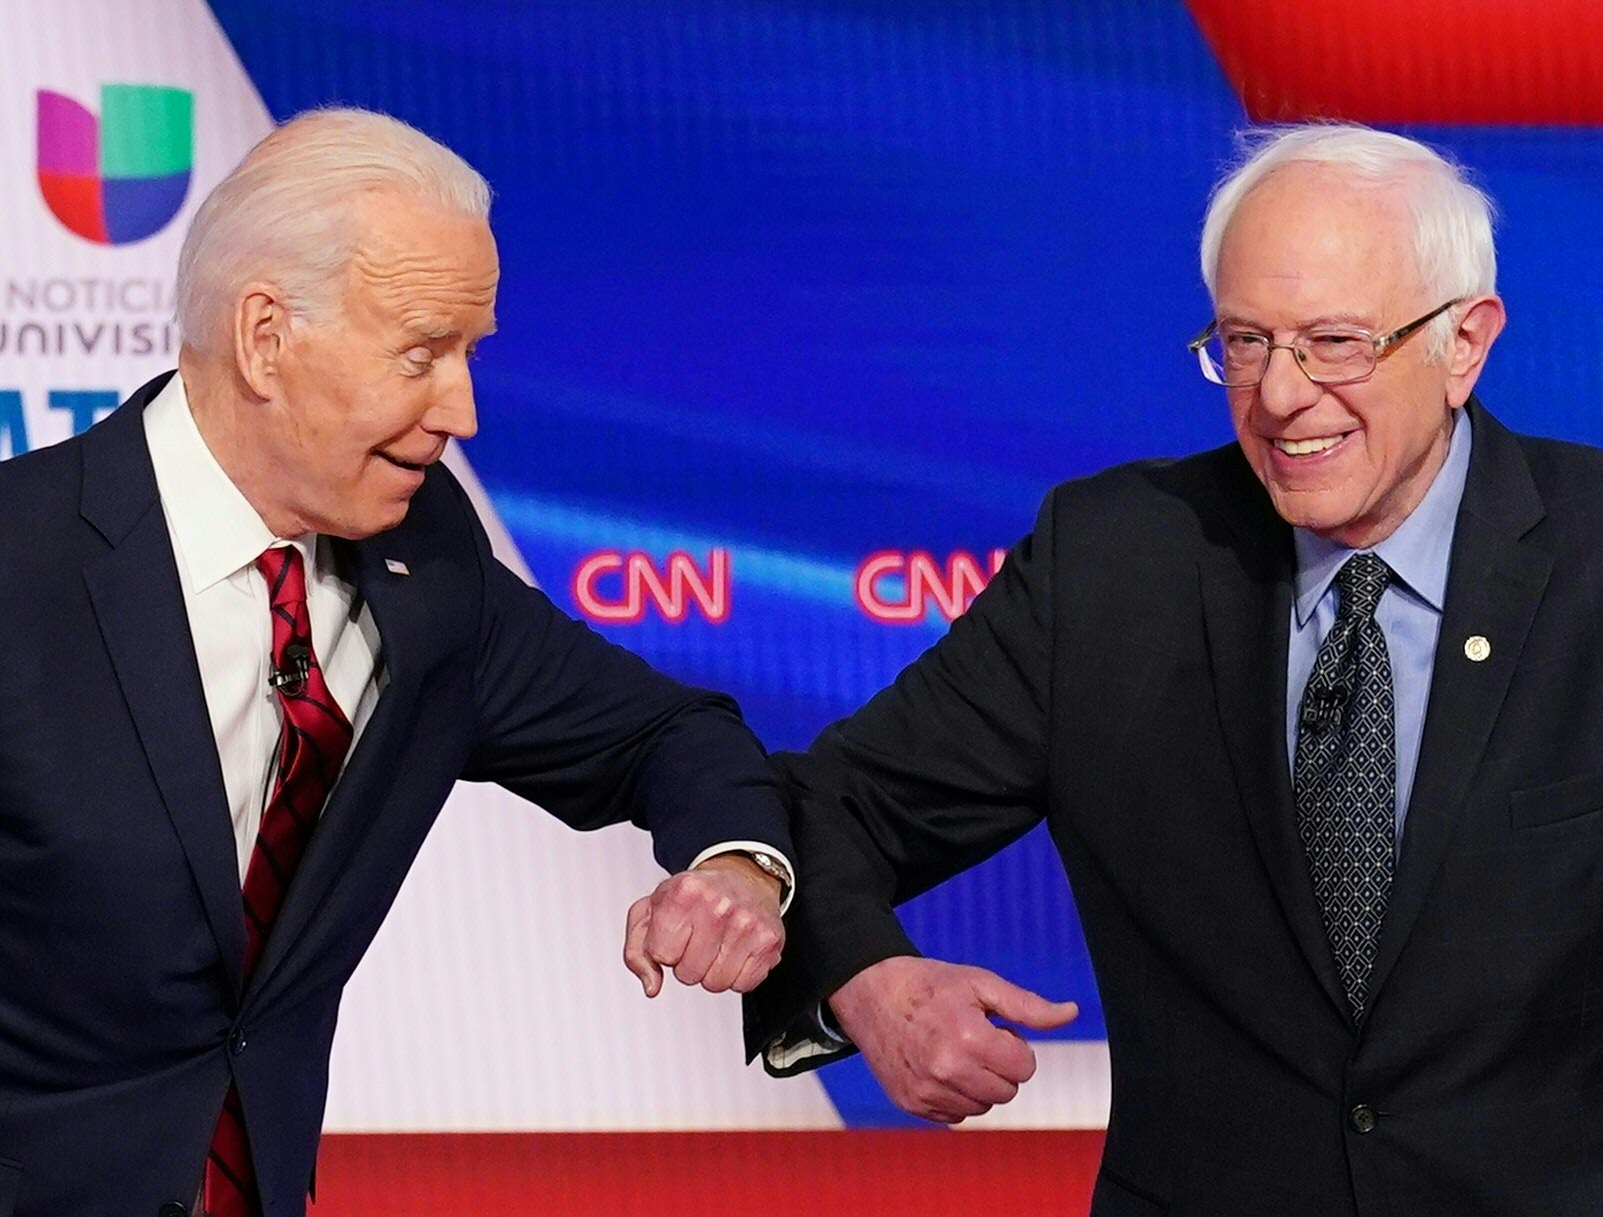 Democratic presidential hopefuls former US vice president Joe Biden (L) and Senator Bernie Sanders greet each other with a safe elbow bump before the start of the 11th Democratic Party 2020 presidential debate in a CNN Washington Bureau studio in Washington, DC on March 15, 2020. (Photo by MANDEL NGAN/AFP via Getty Images)